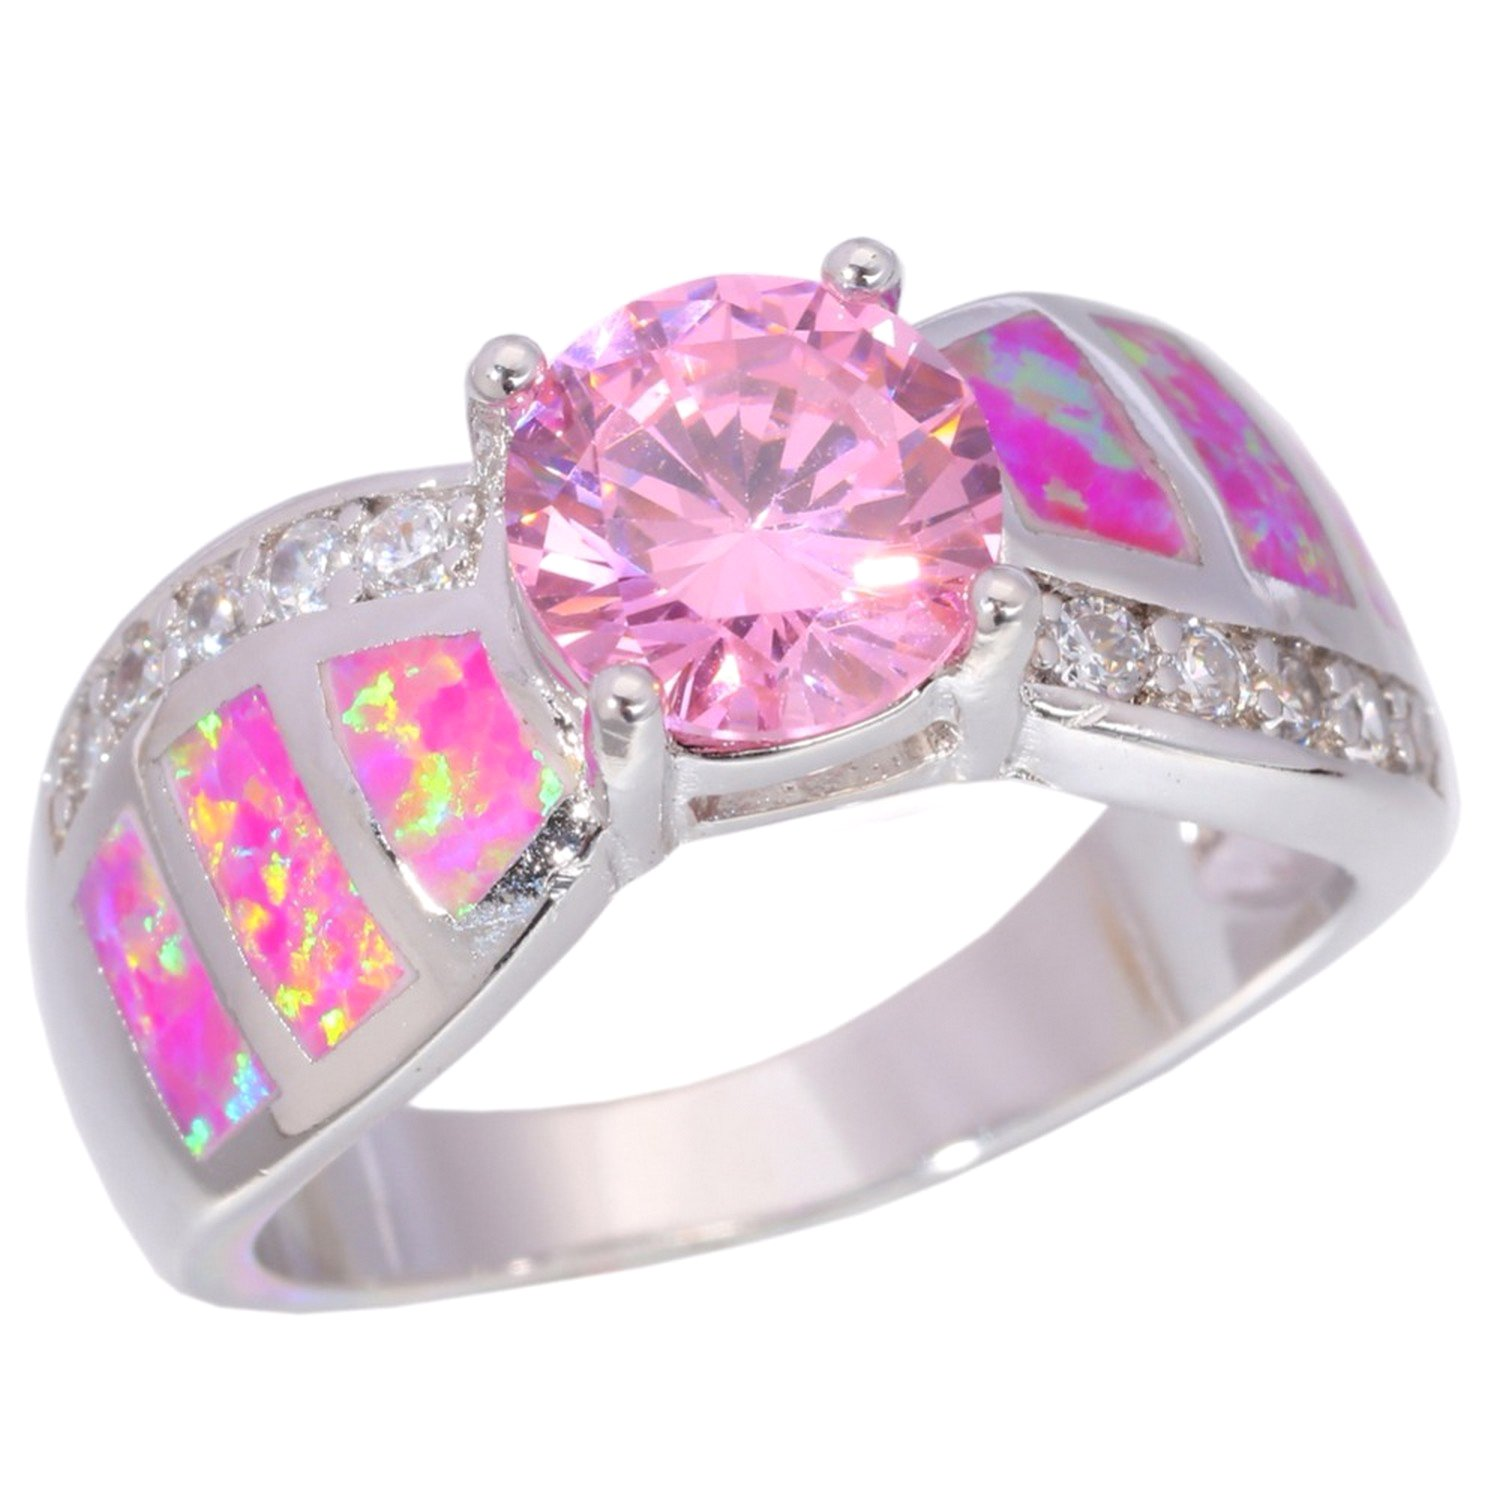 Amazon.com: Slyq Jewelry Created Opal Pink Zircon rose gold ...